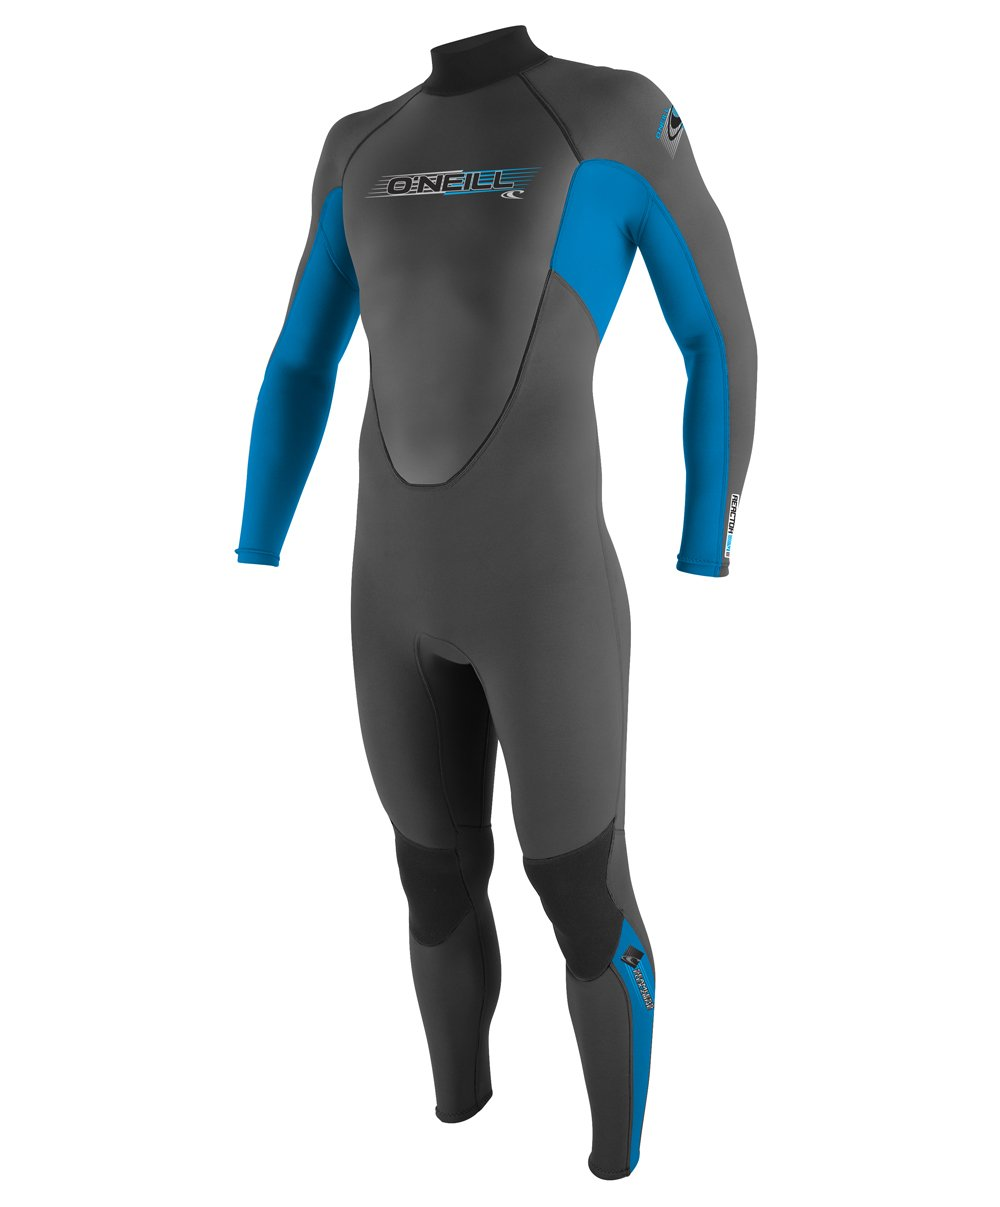 O'Neill Youth Reactor 3/2mm Back Zip Full Wetsuit, Graphite/Bright Blue/Graphite, 8